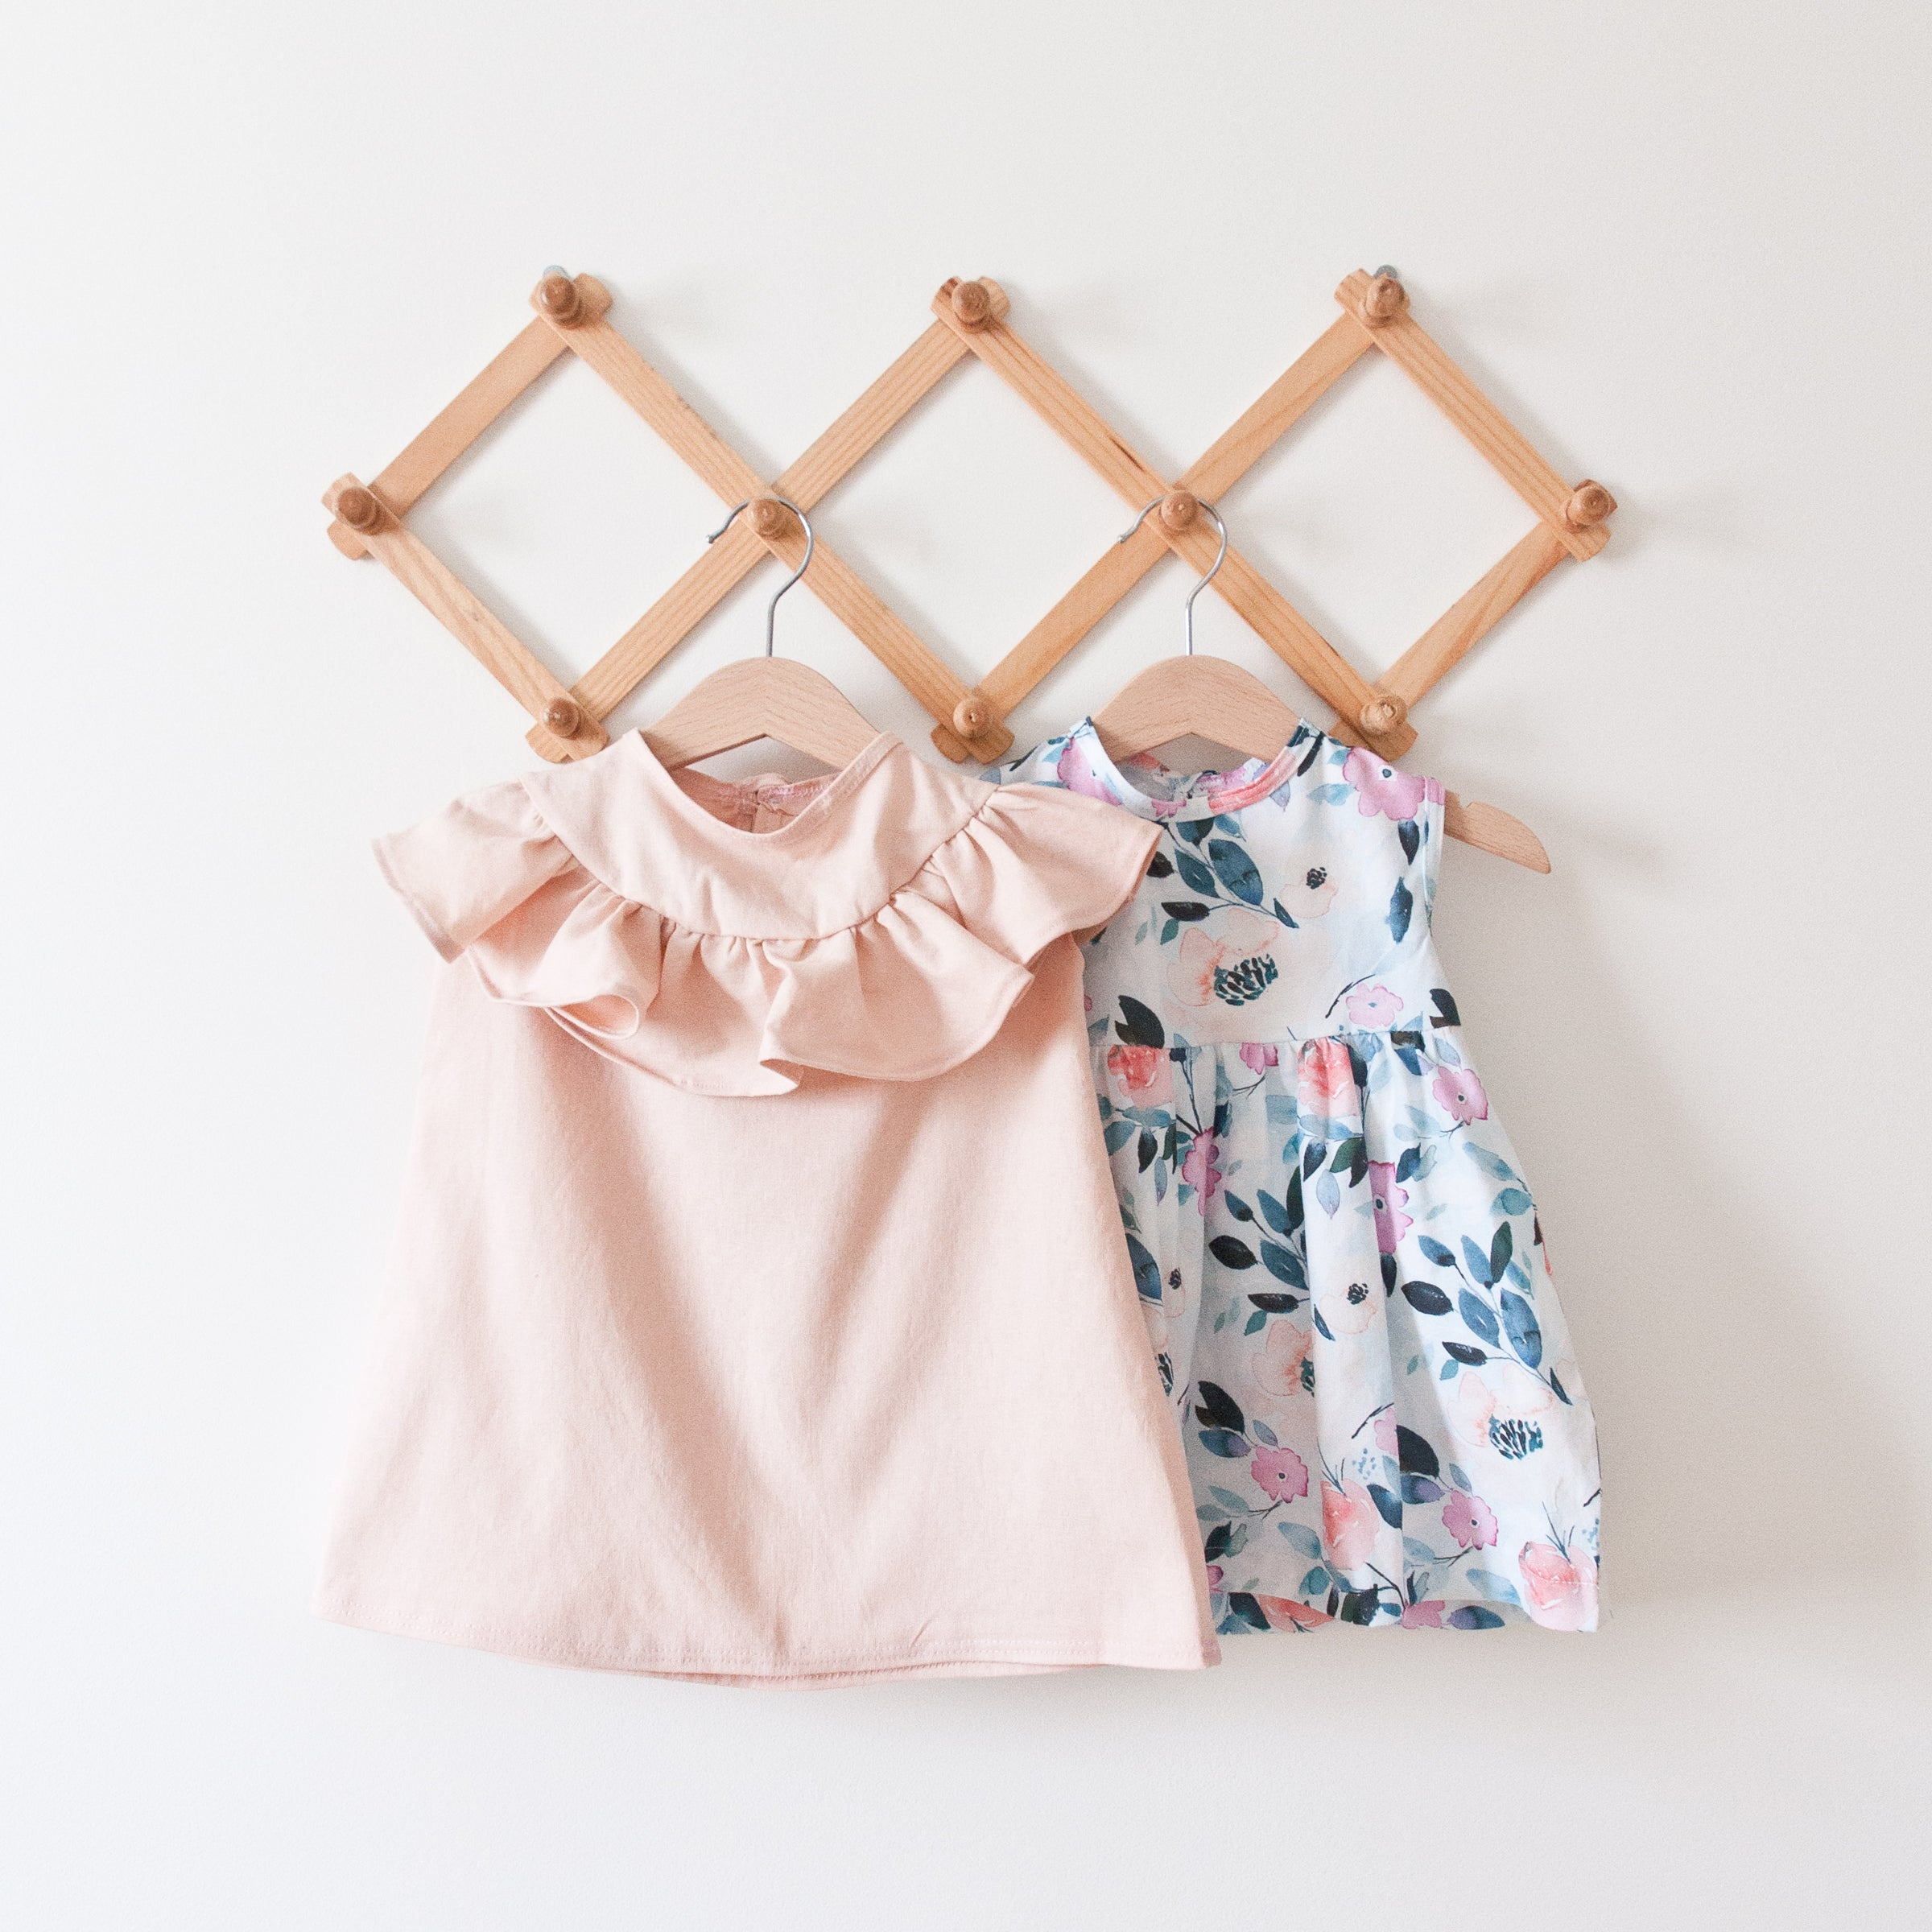 Floral Emery Cotton Dress